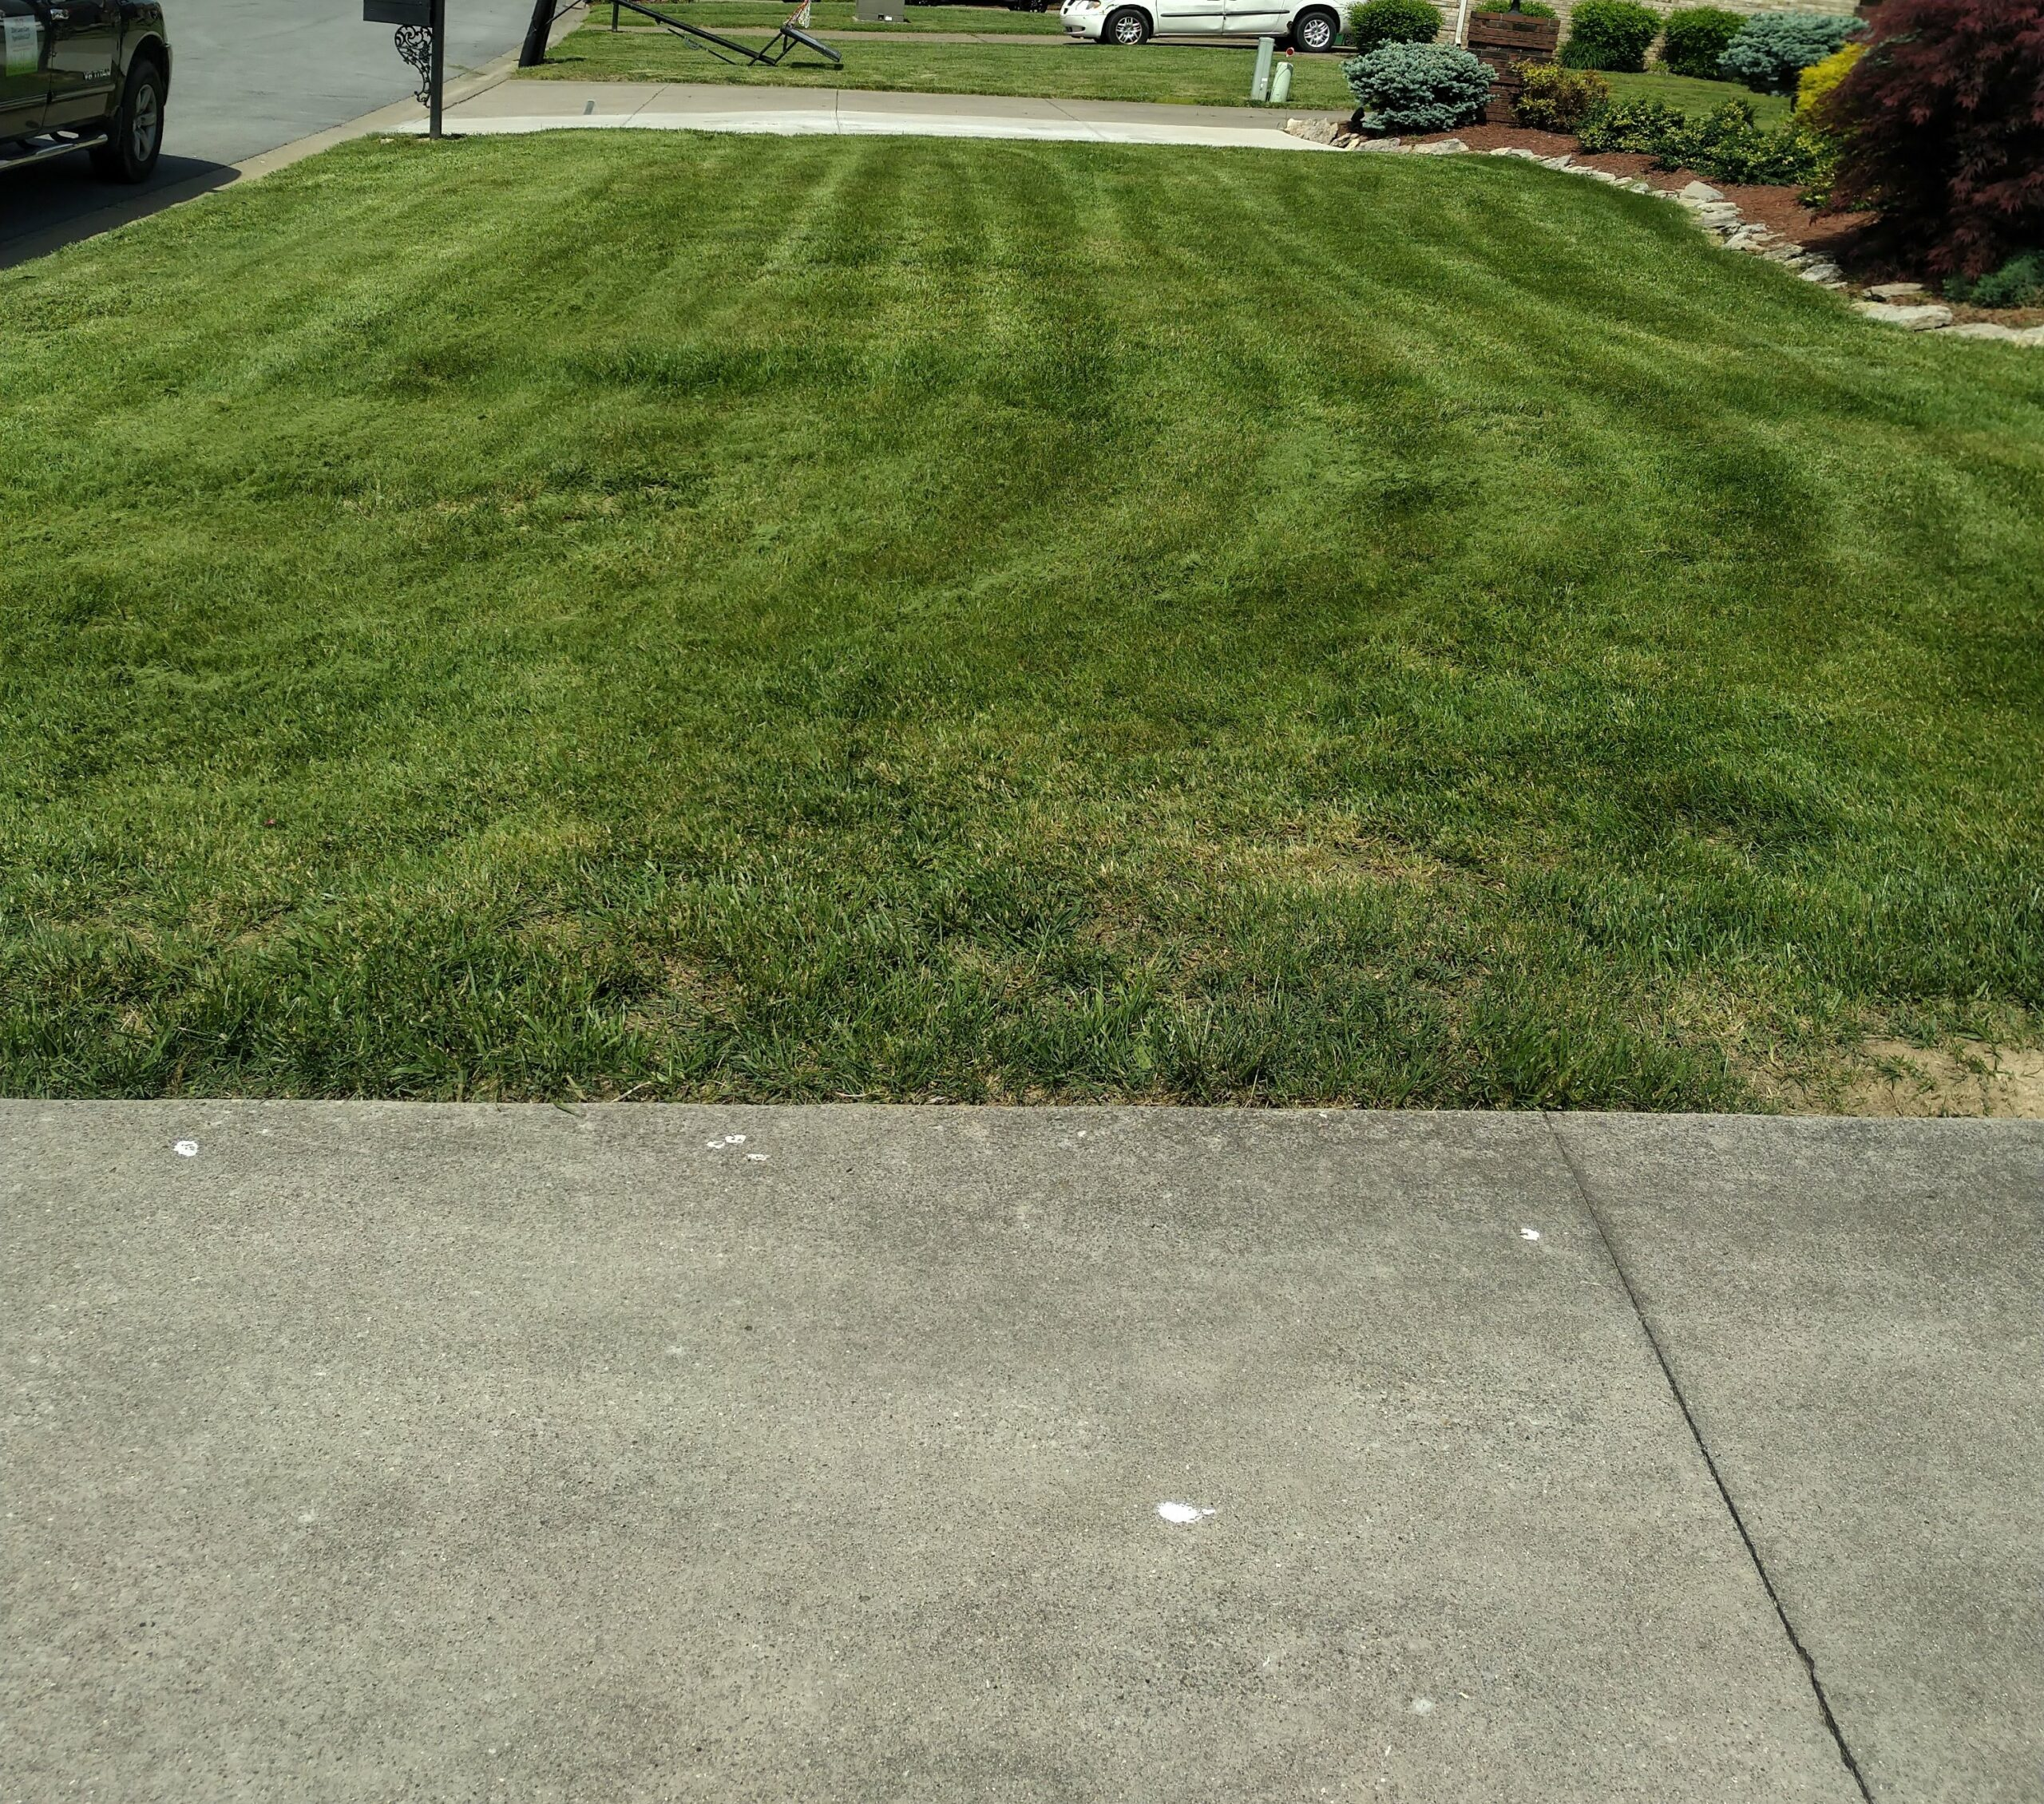 A small residential lawn that has been recently mowed by ELCS. The grass has been neatly cut and there are visible mowing stripes in the grass.